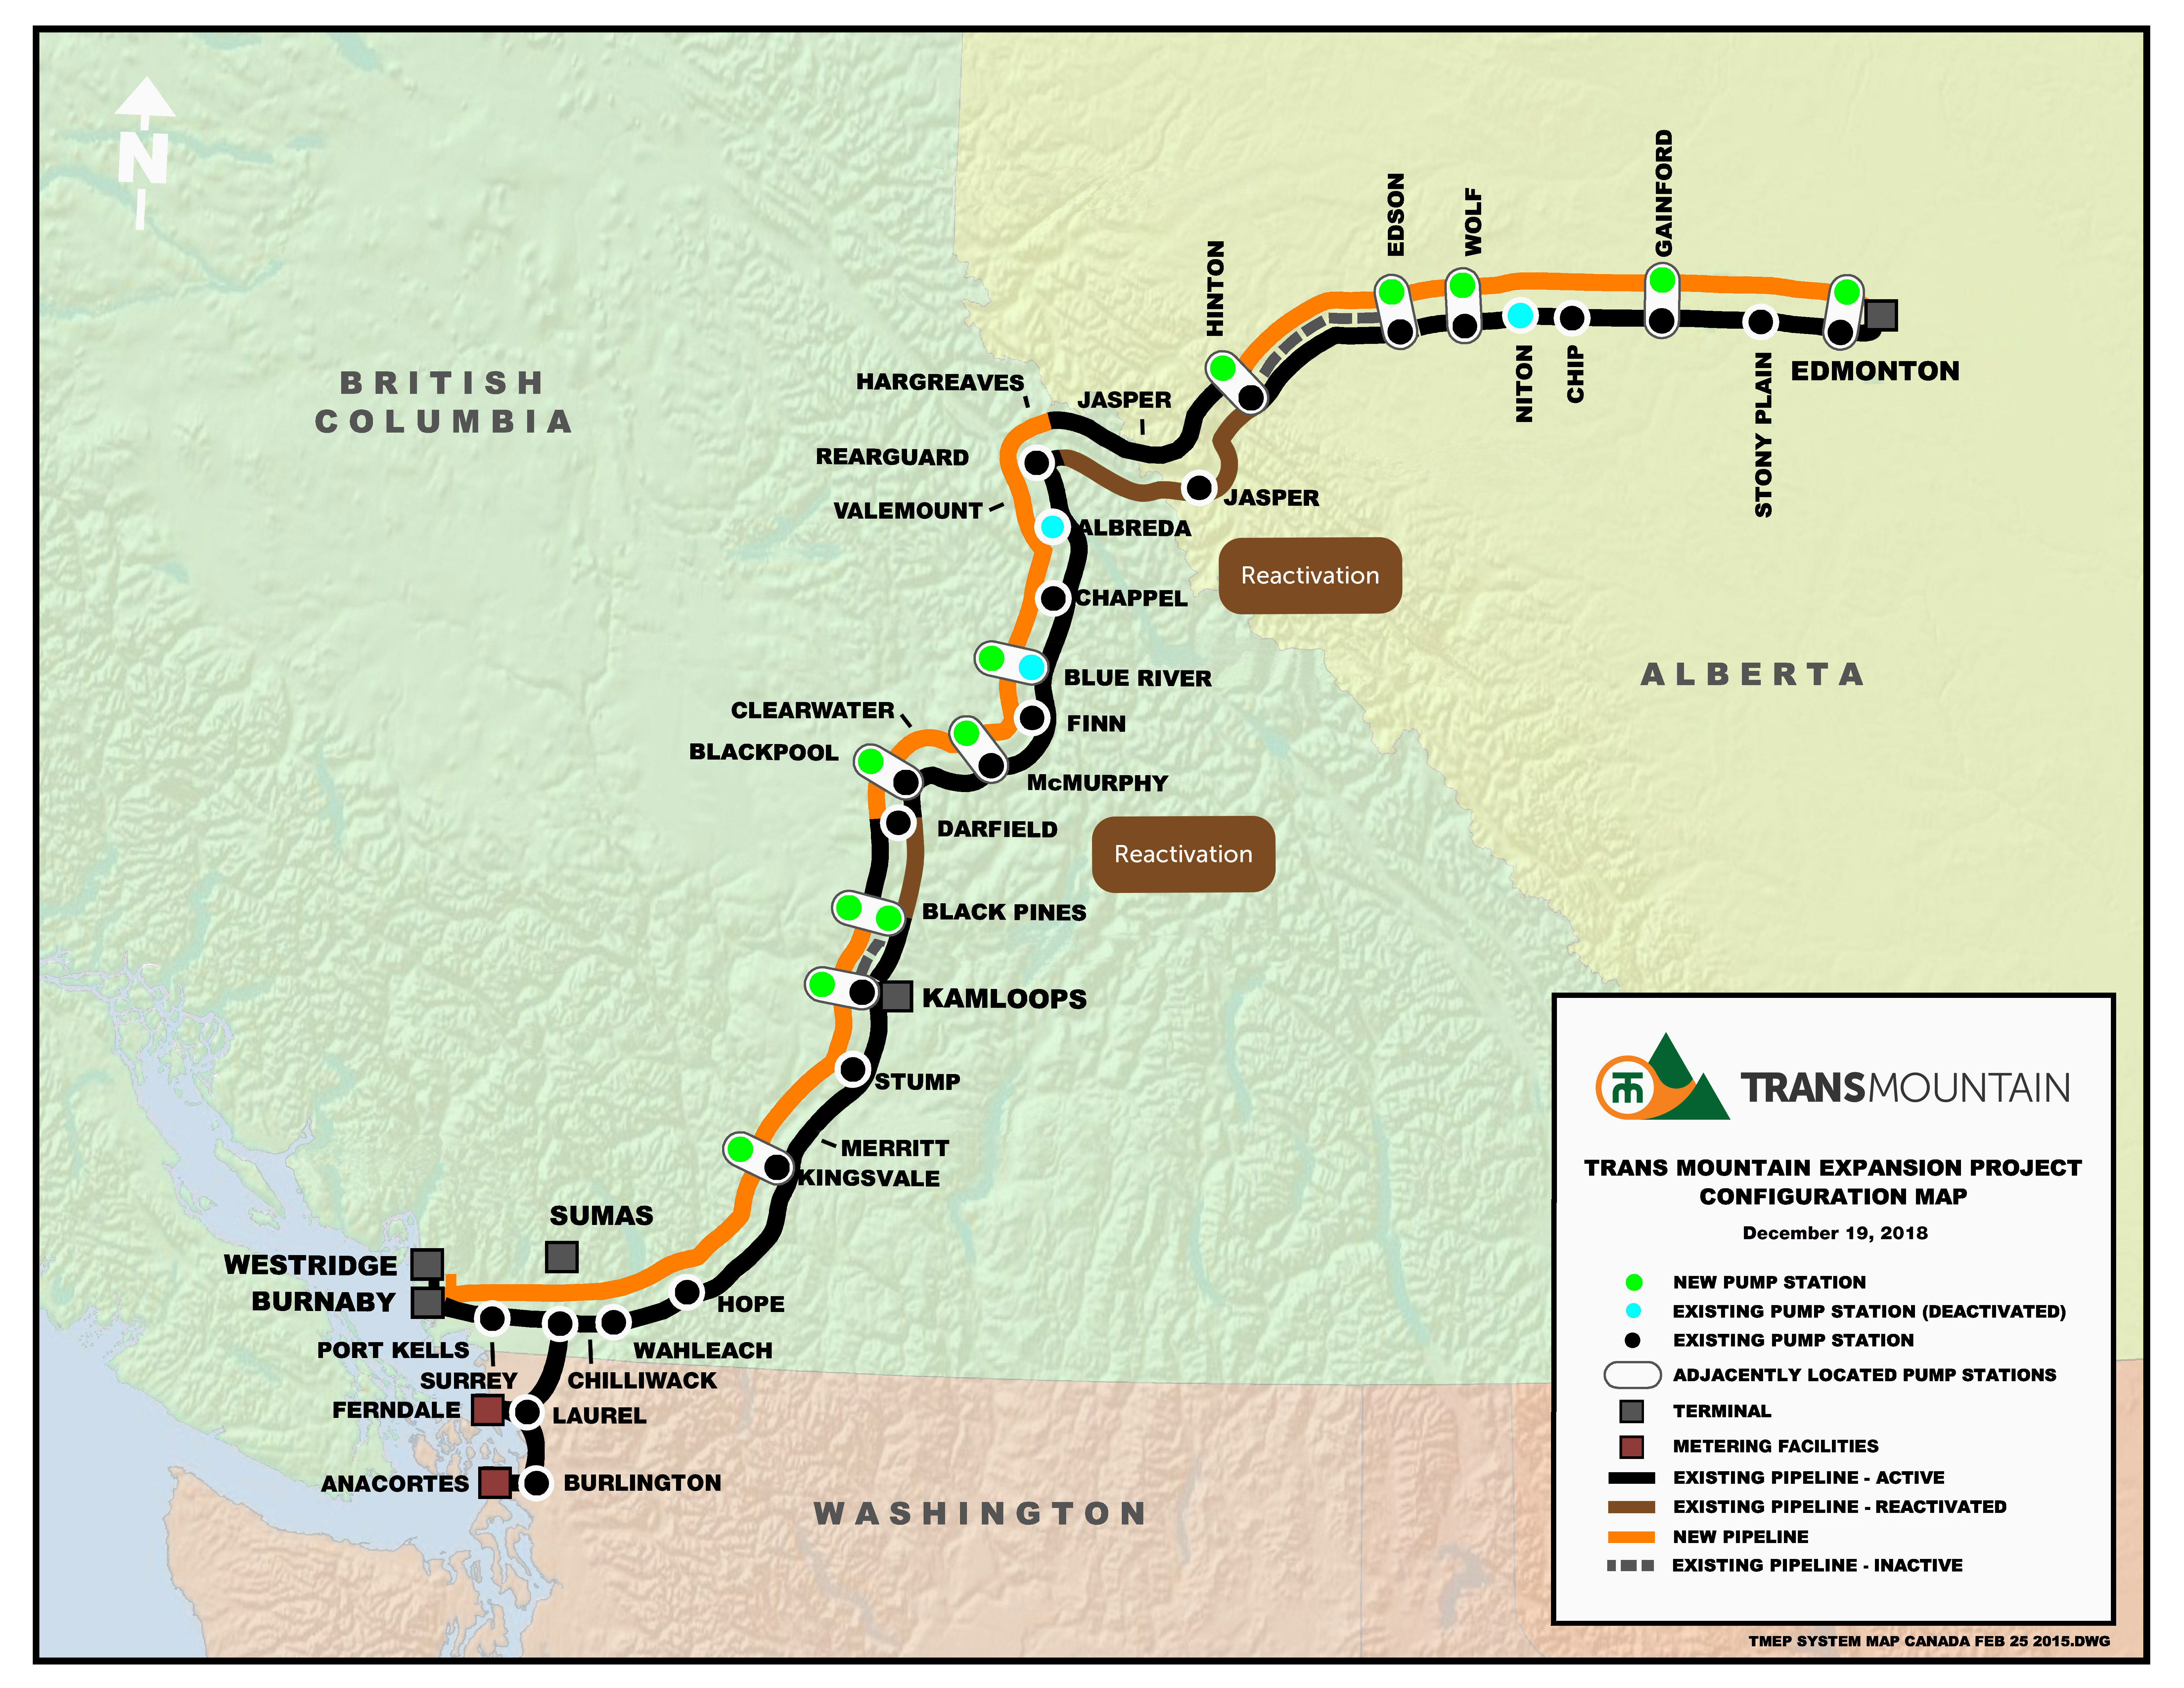 Planning the Route - Trans Mountain